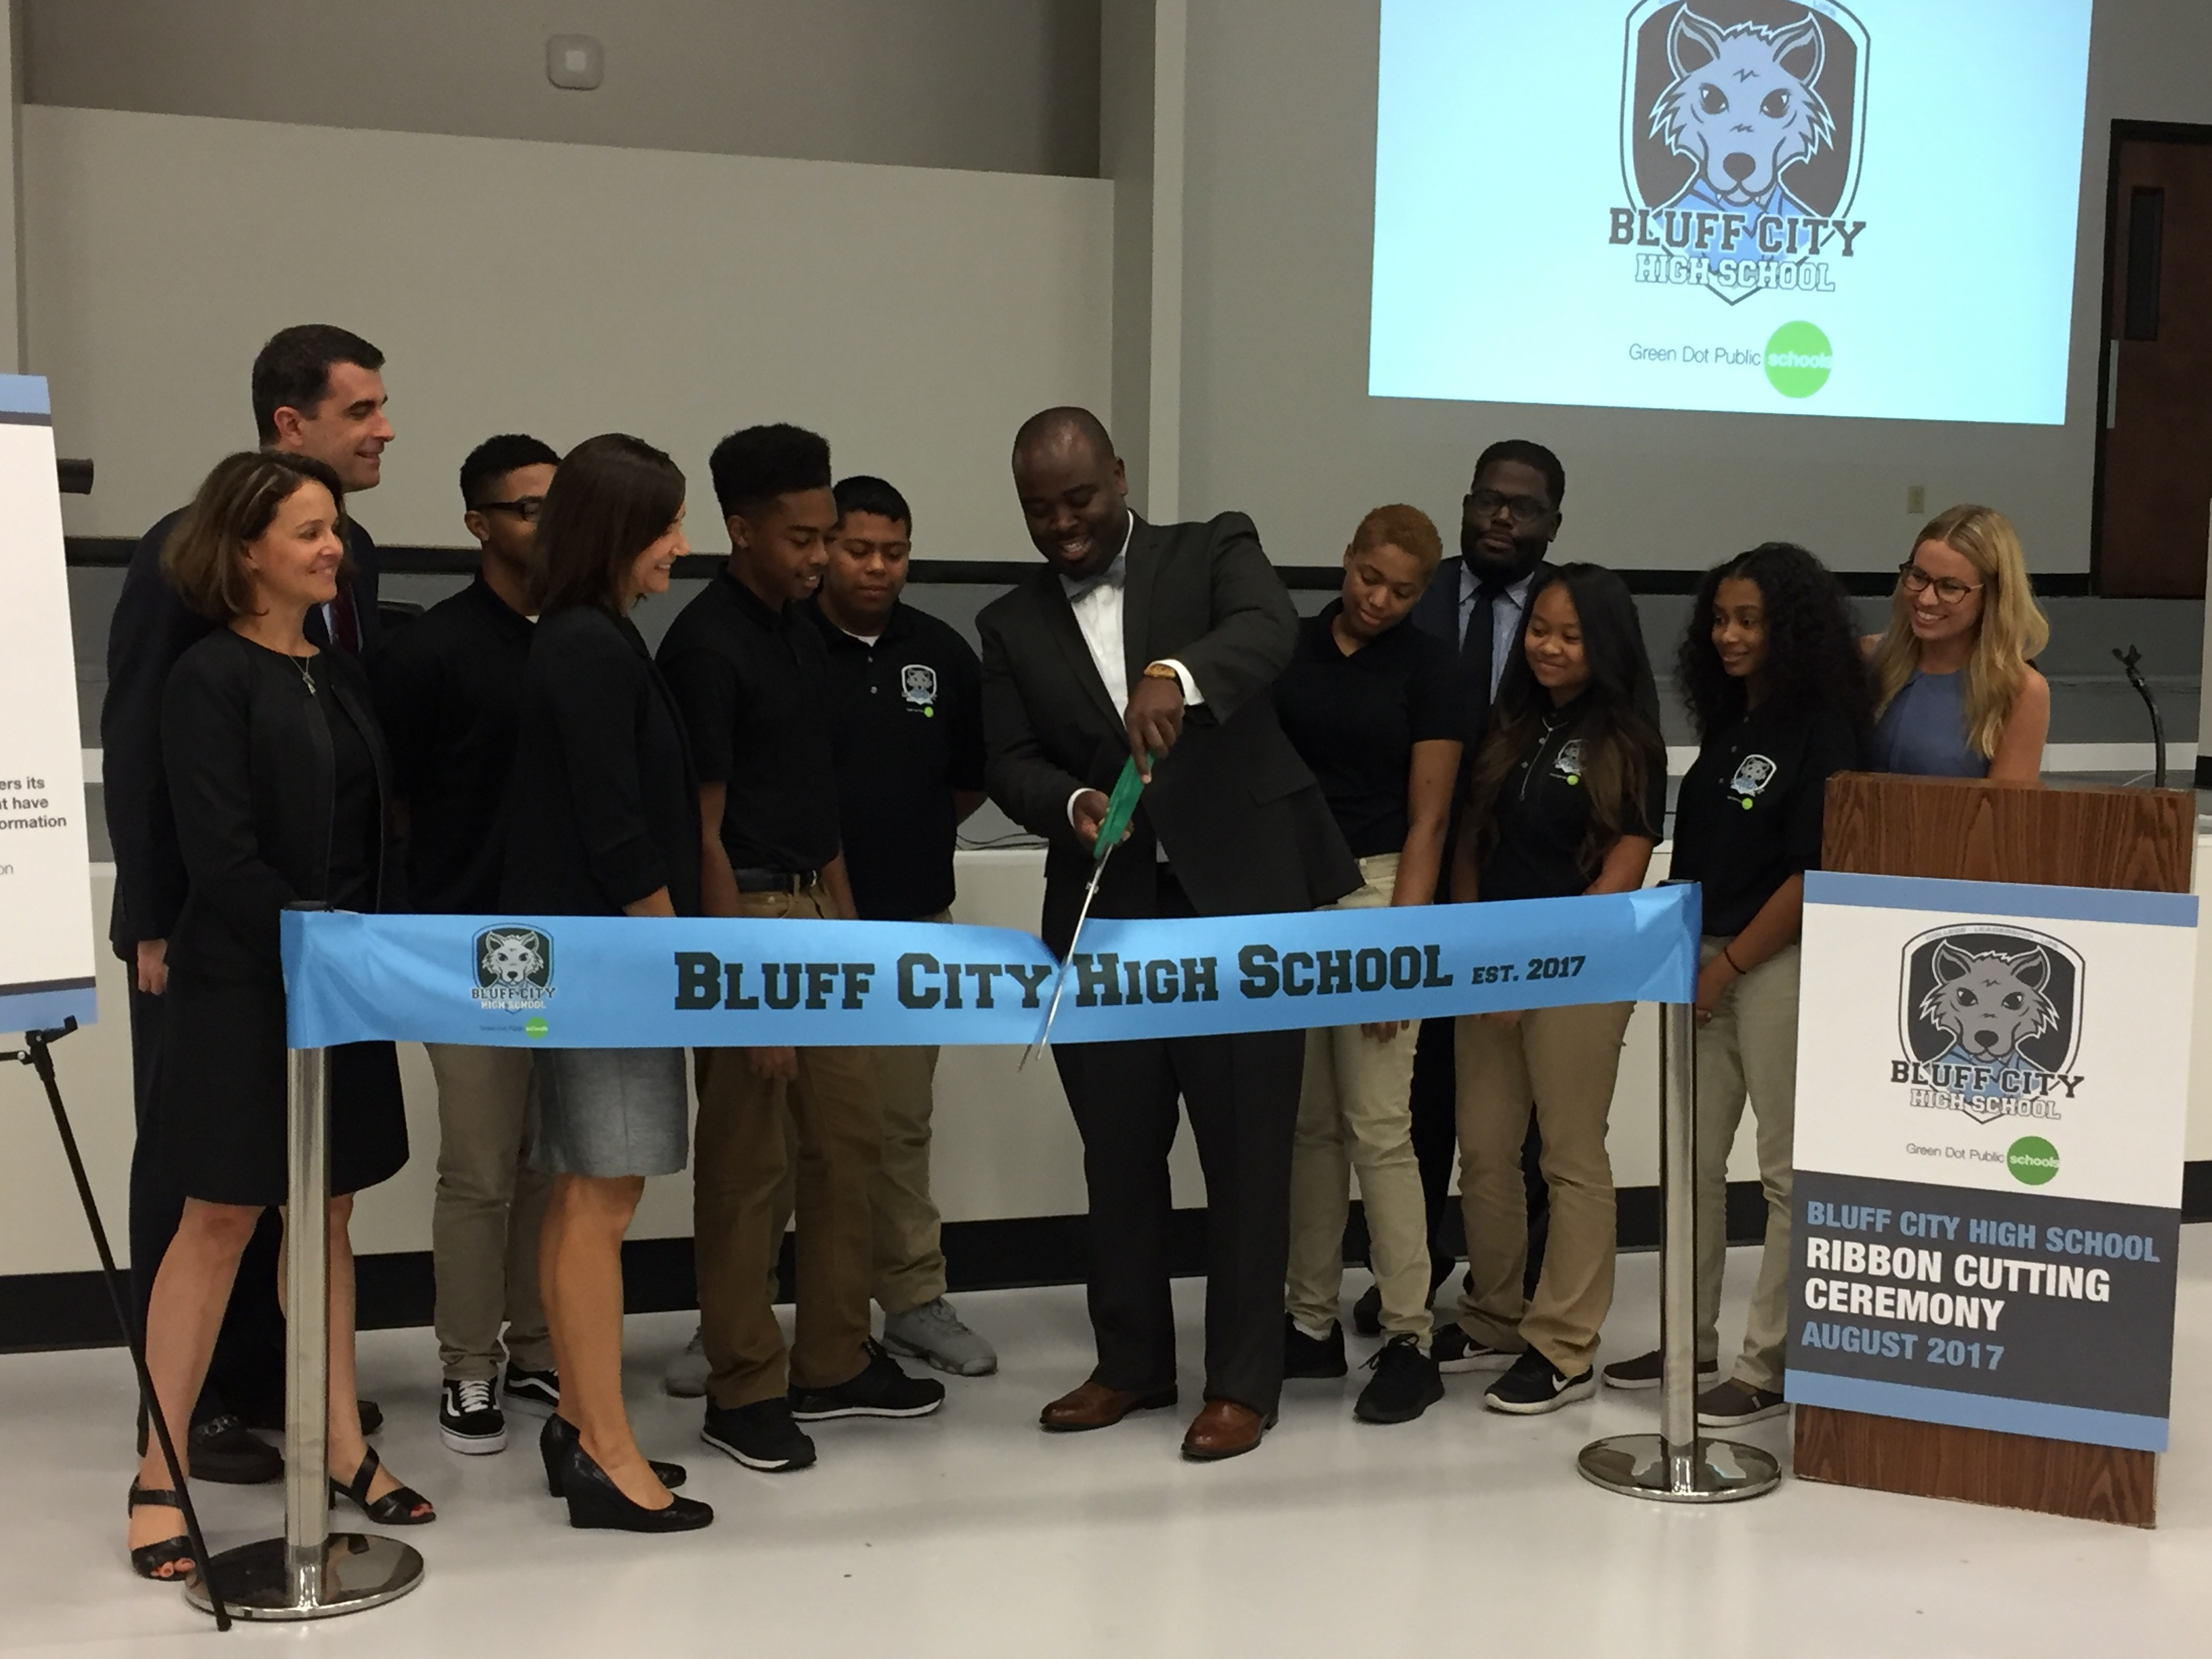 Principal Jonas Cleaves cuts the ribbon at Bluff Hills High School's opening day ceremony. He is surrounded by students, faculty and leaders of Green Dot and the State Board of Education.